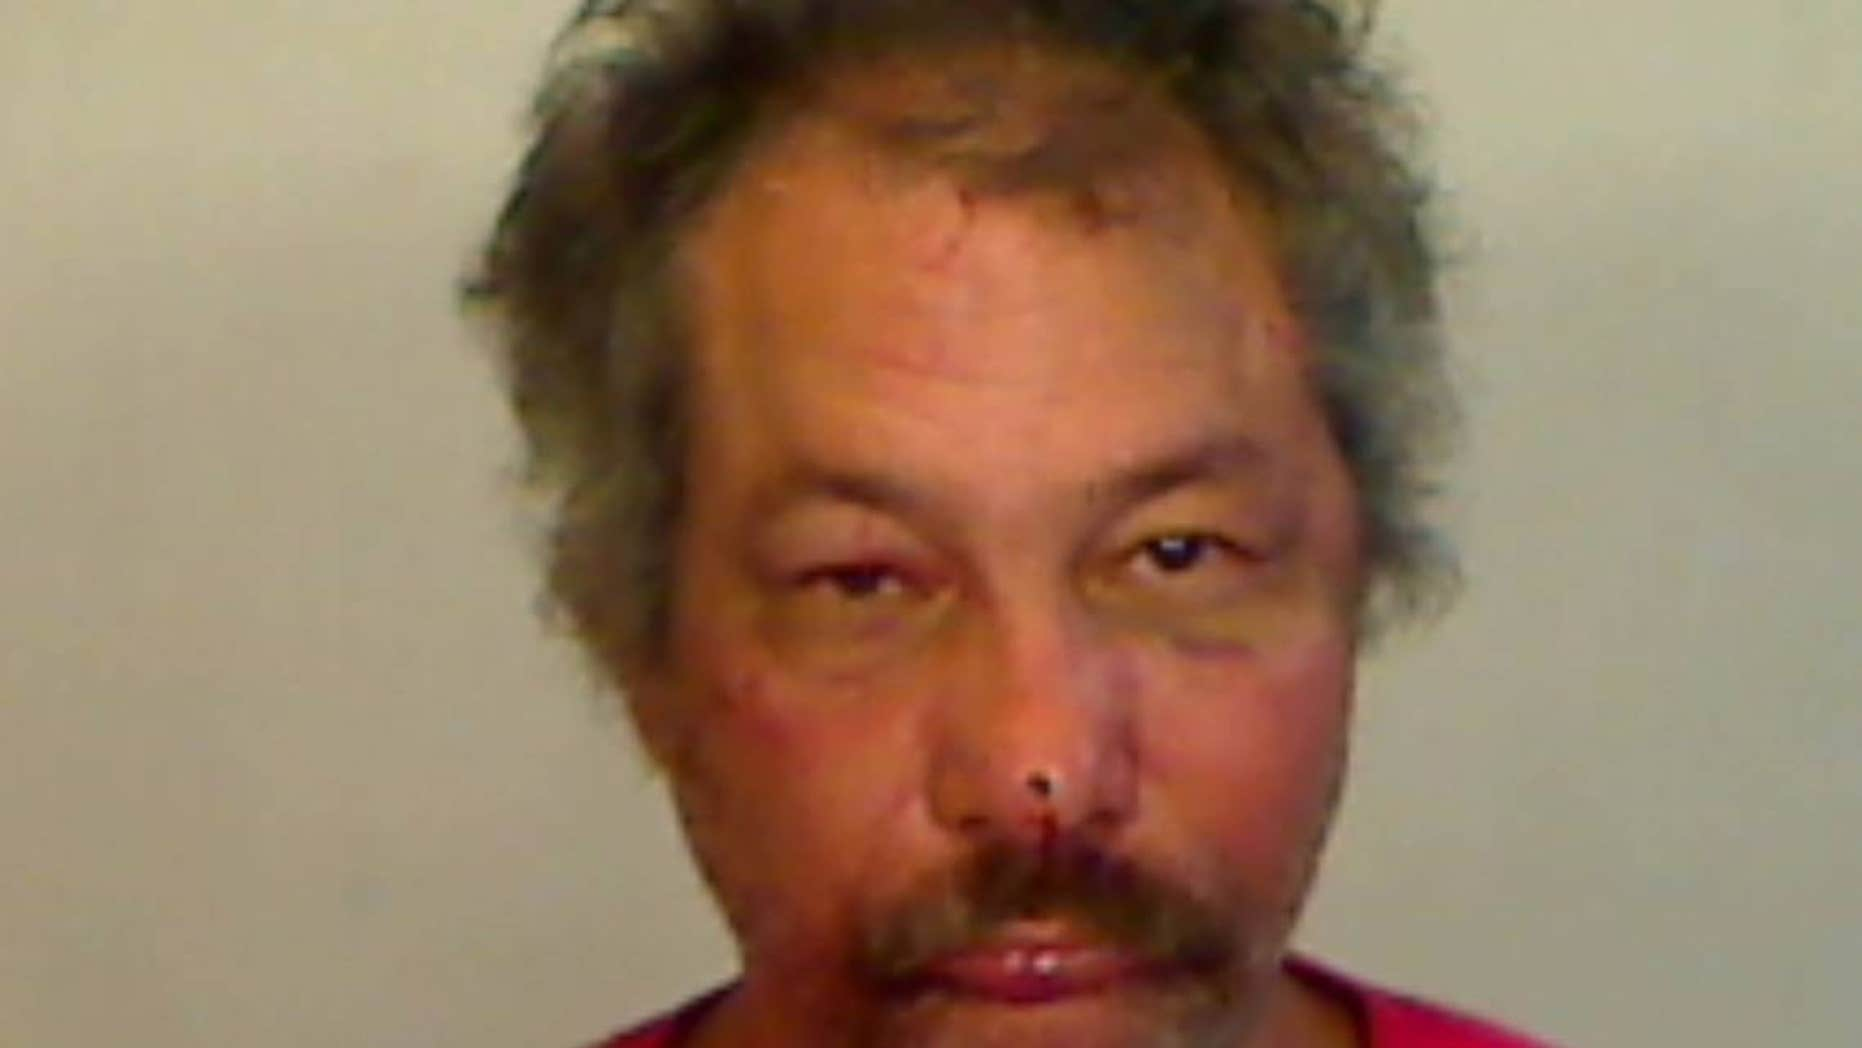 Aurelio Rodriguez was arrested and charged with aggravated battery, according to reports.